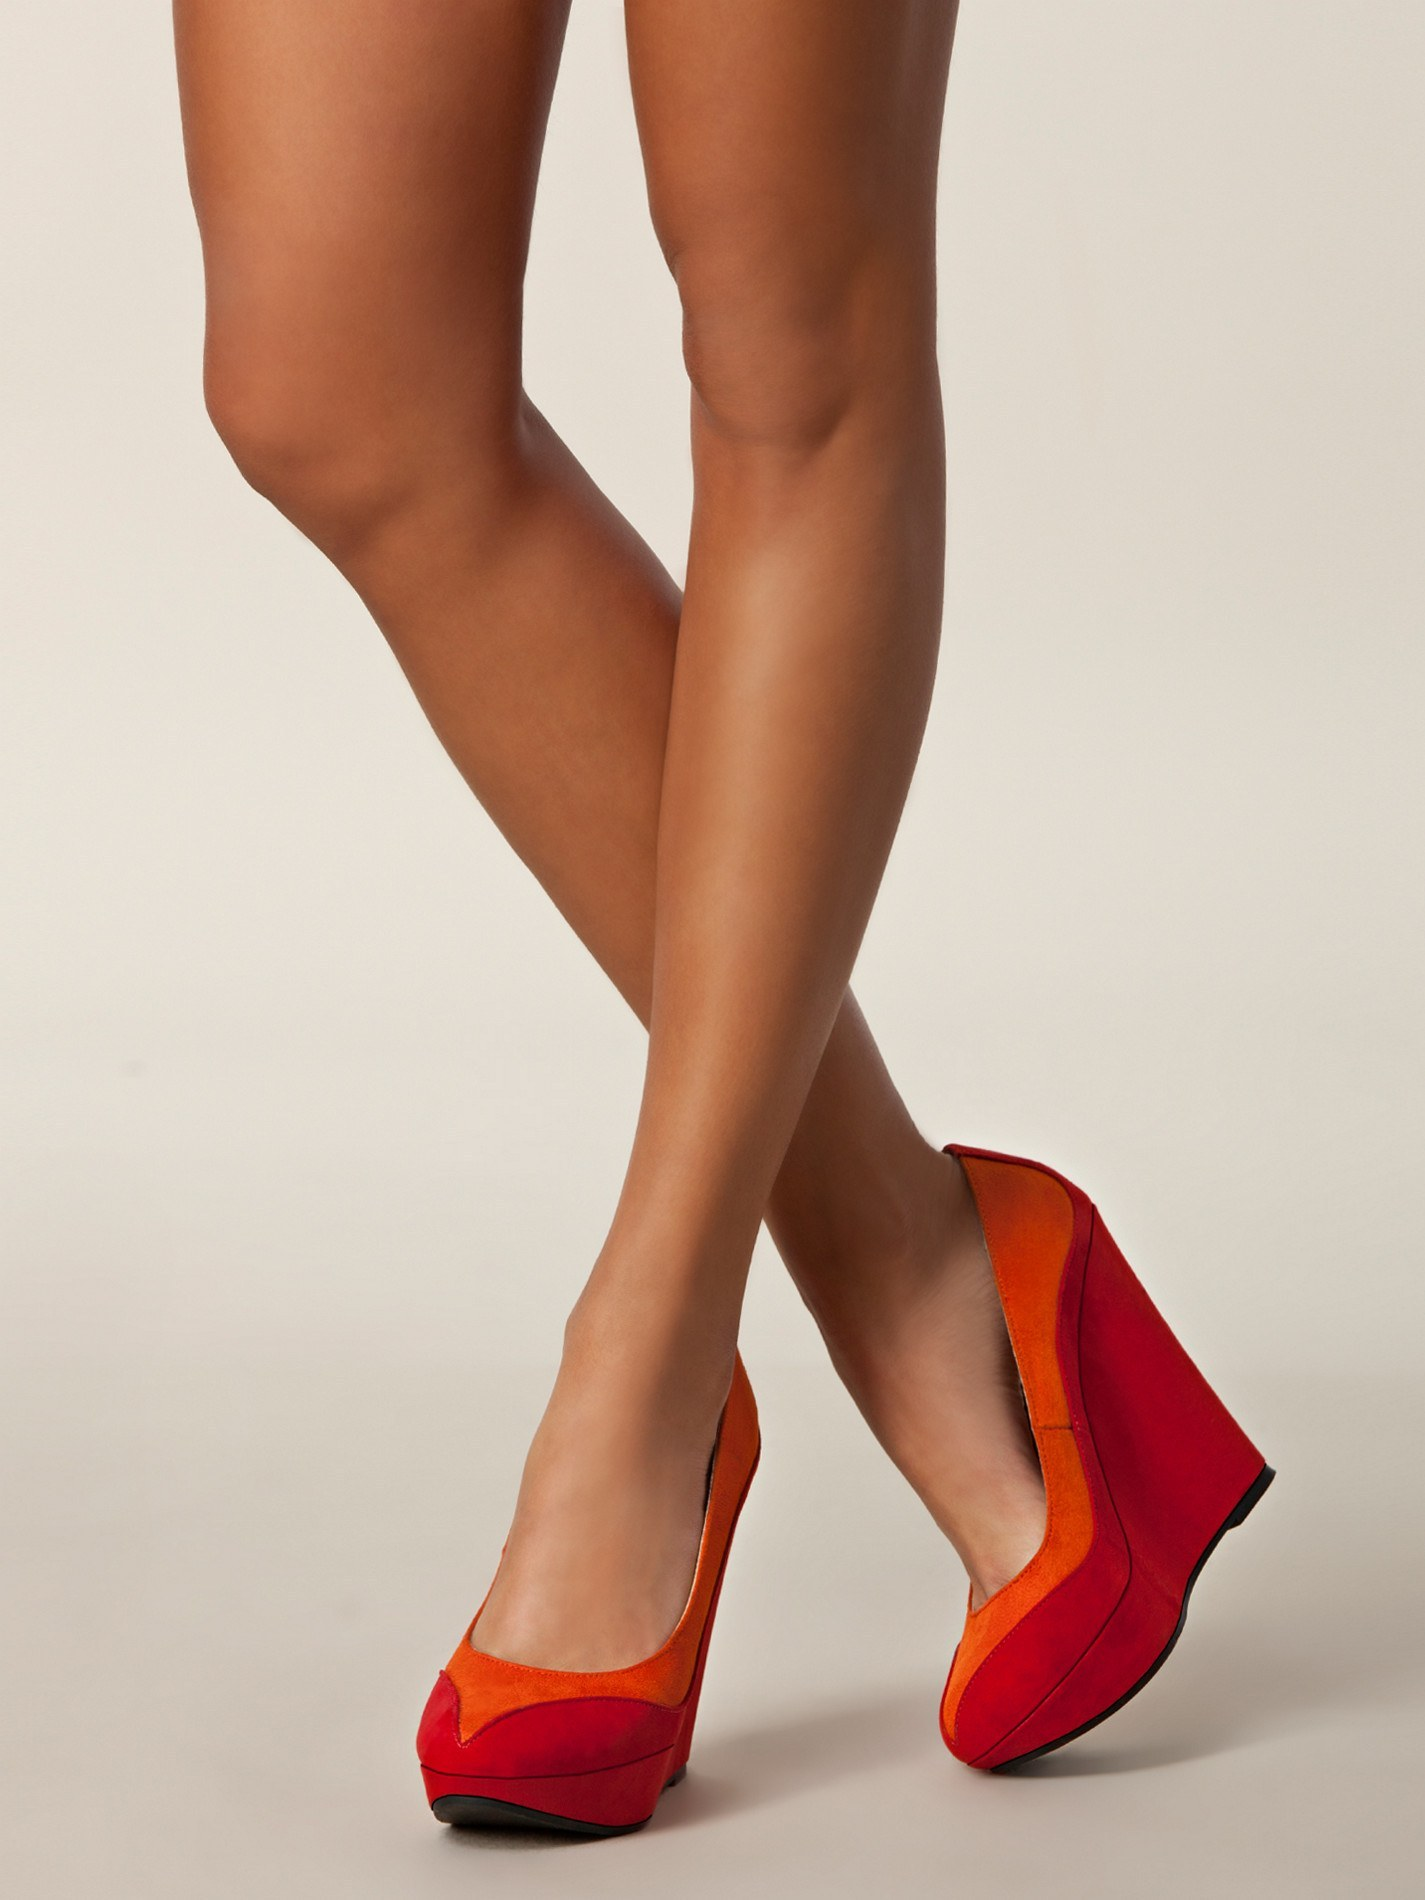 Laser-vasculaire-jambes-corps